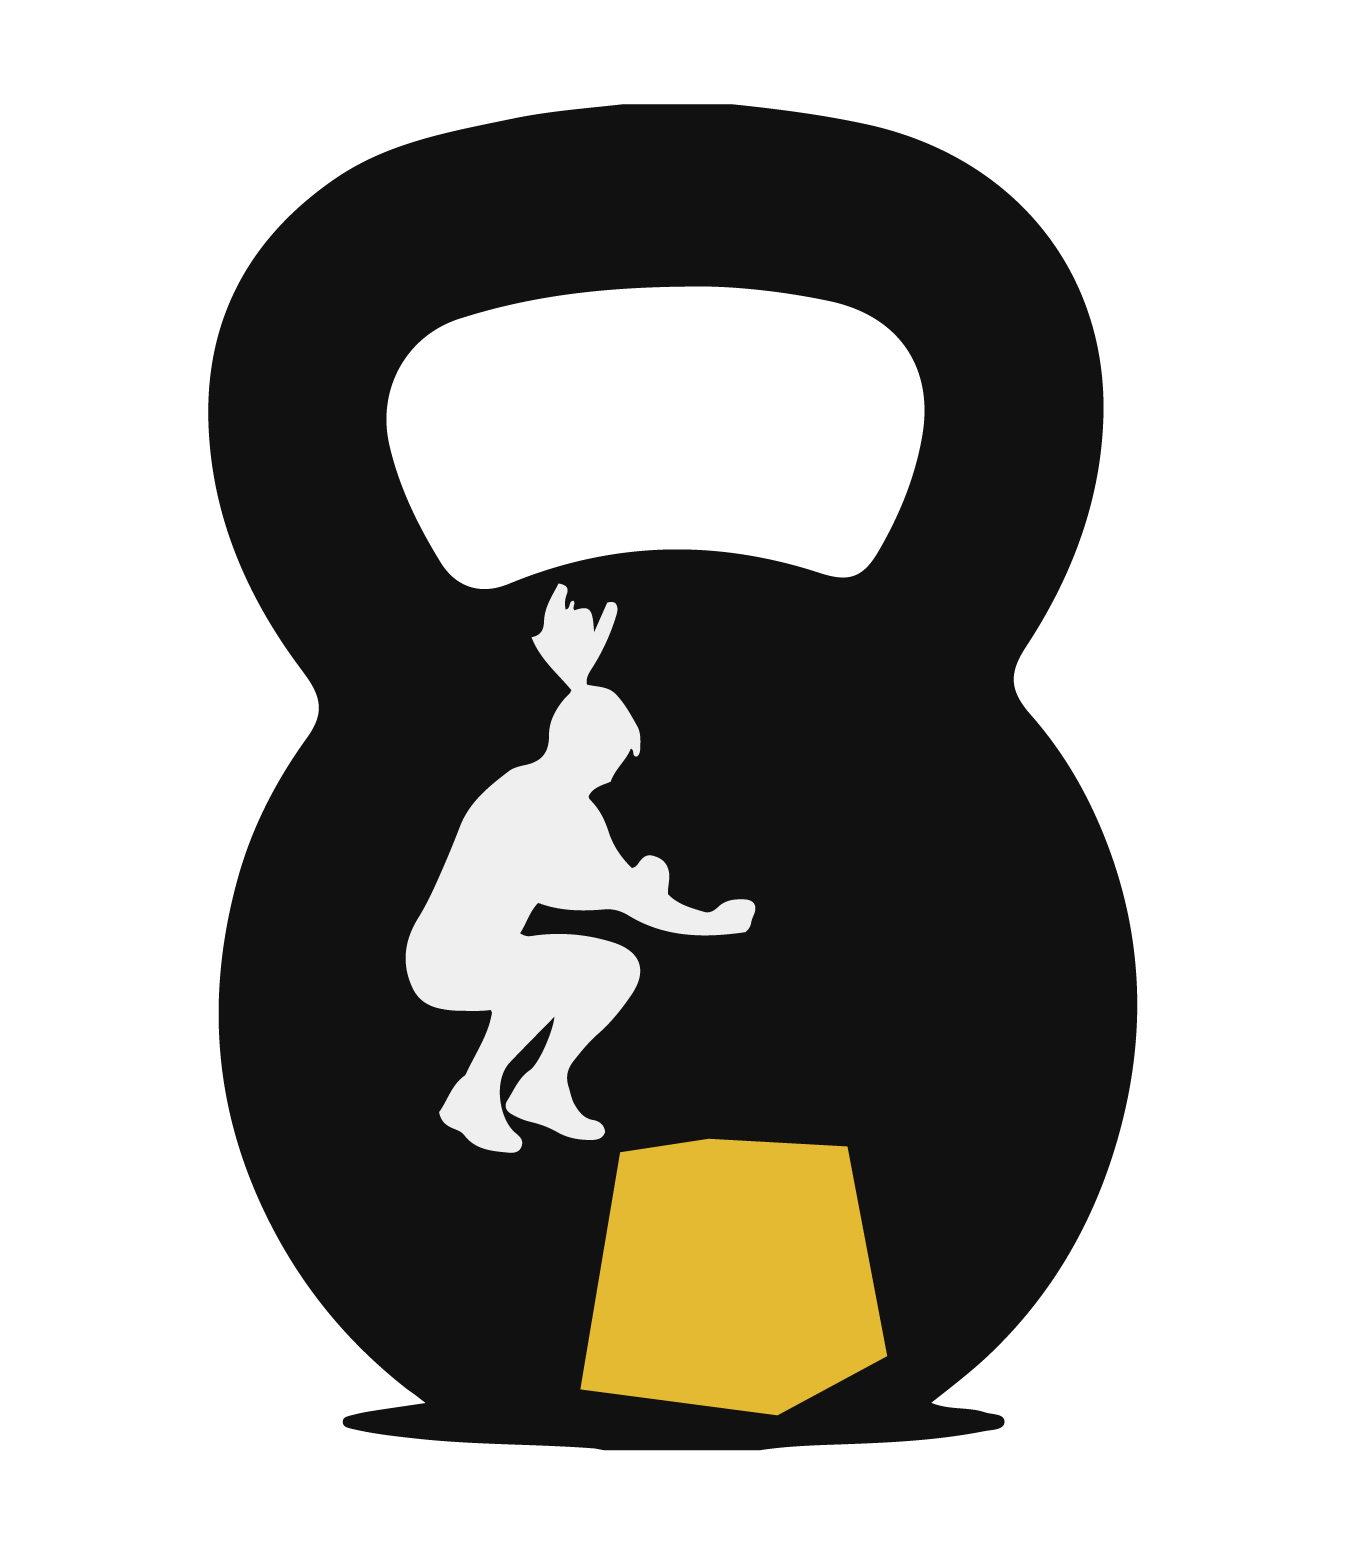 png transparent Kettlebell silhouette clipart. Crossfit eixample cfx fit